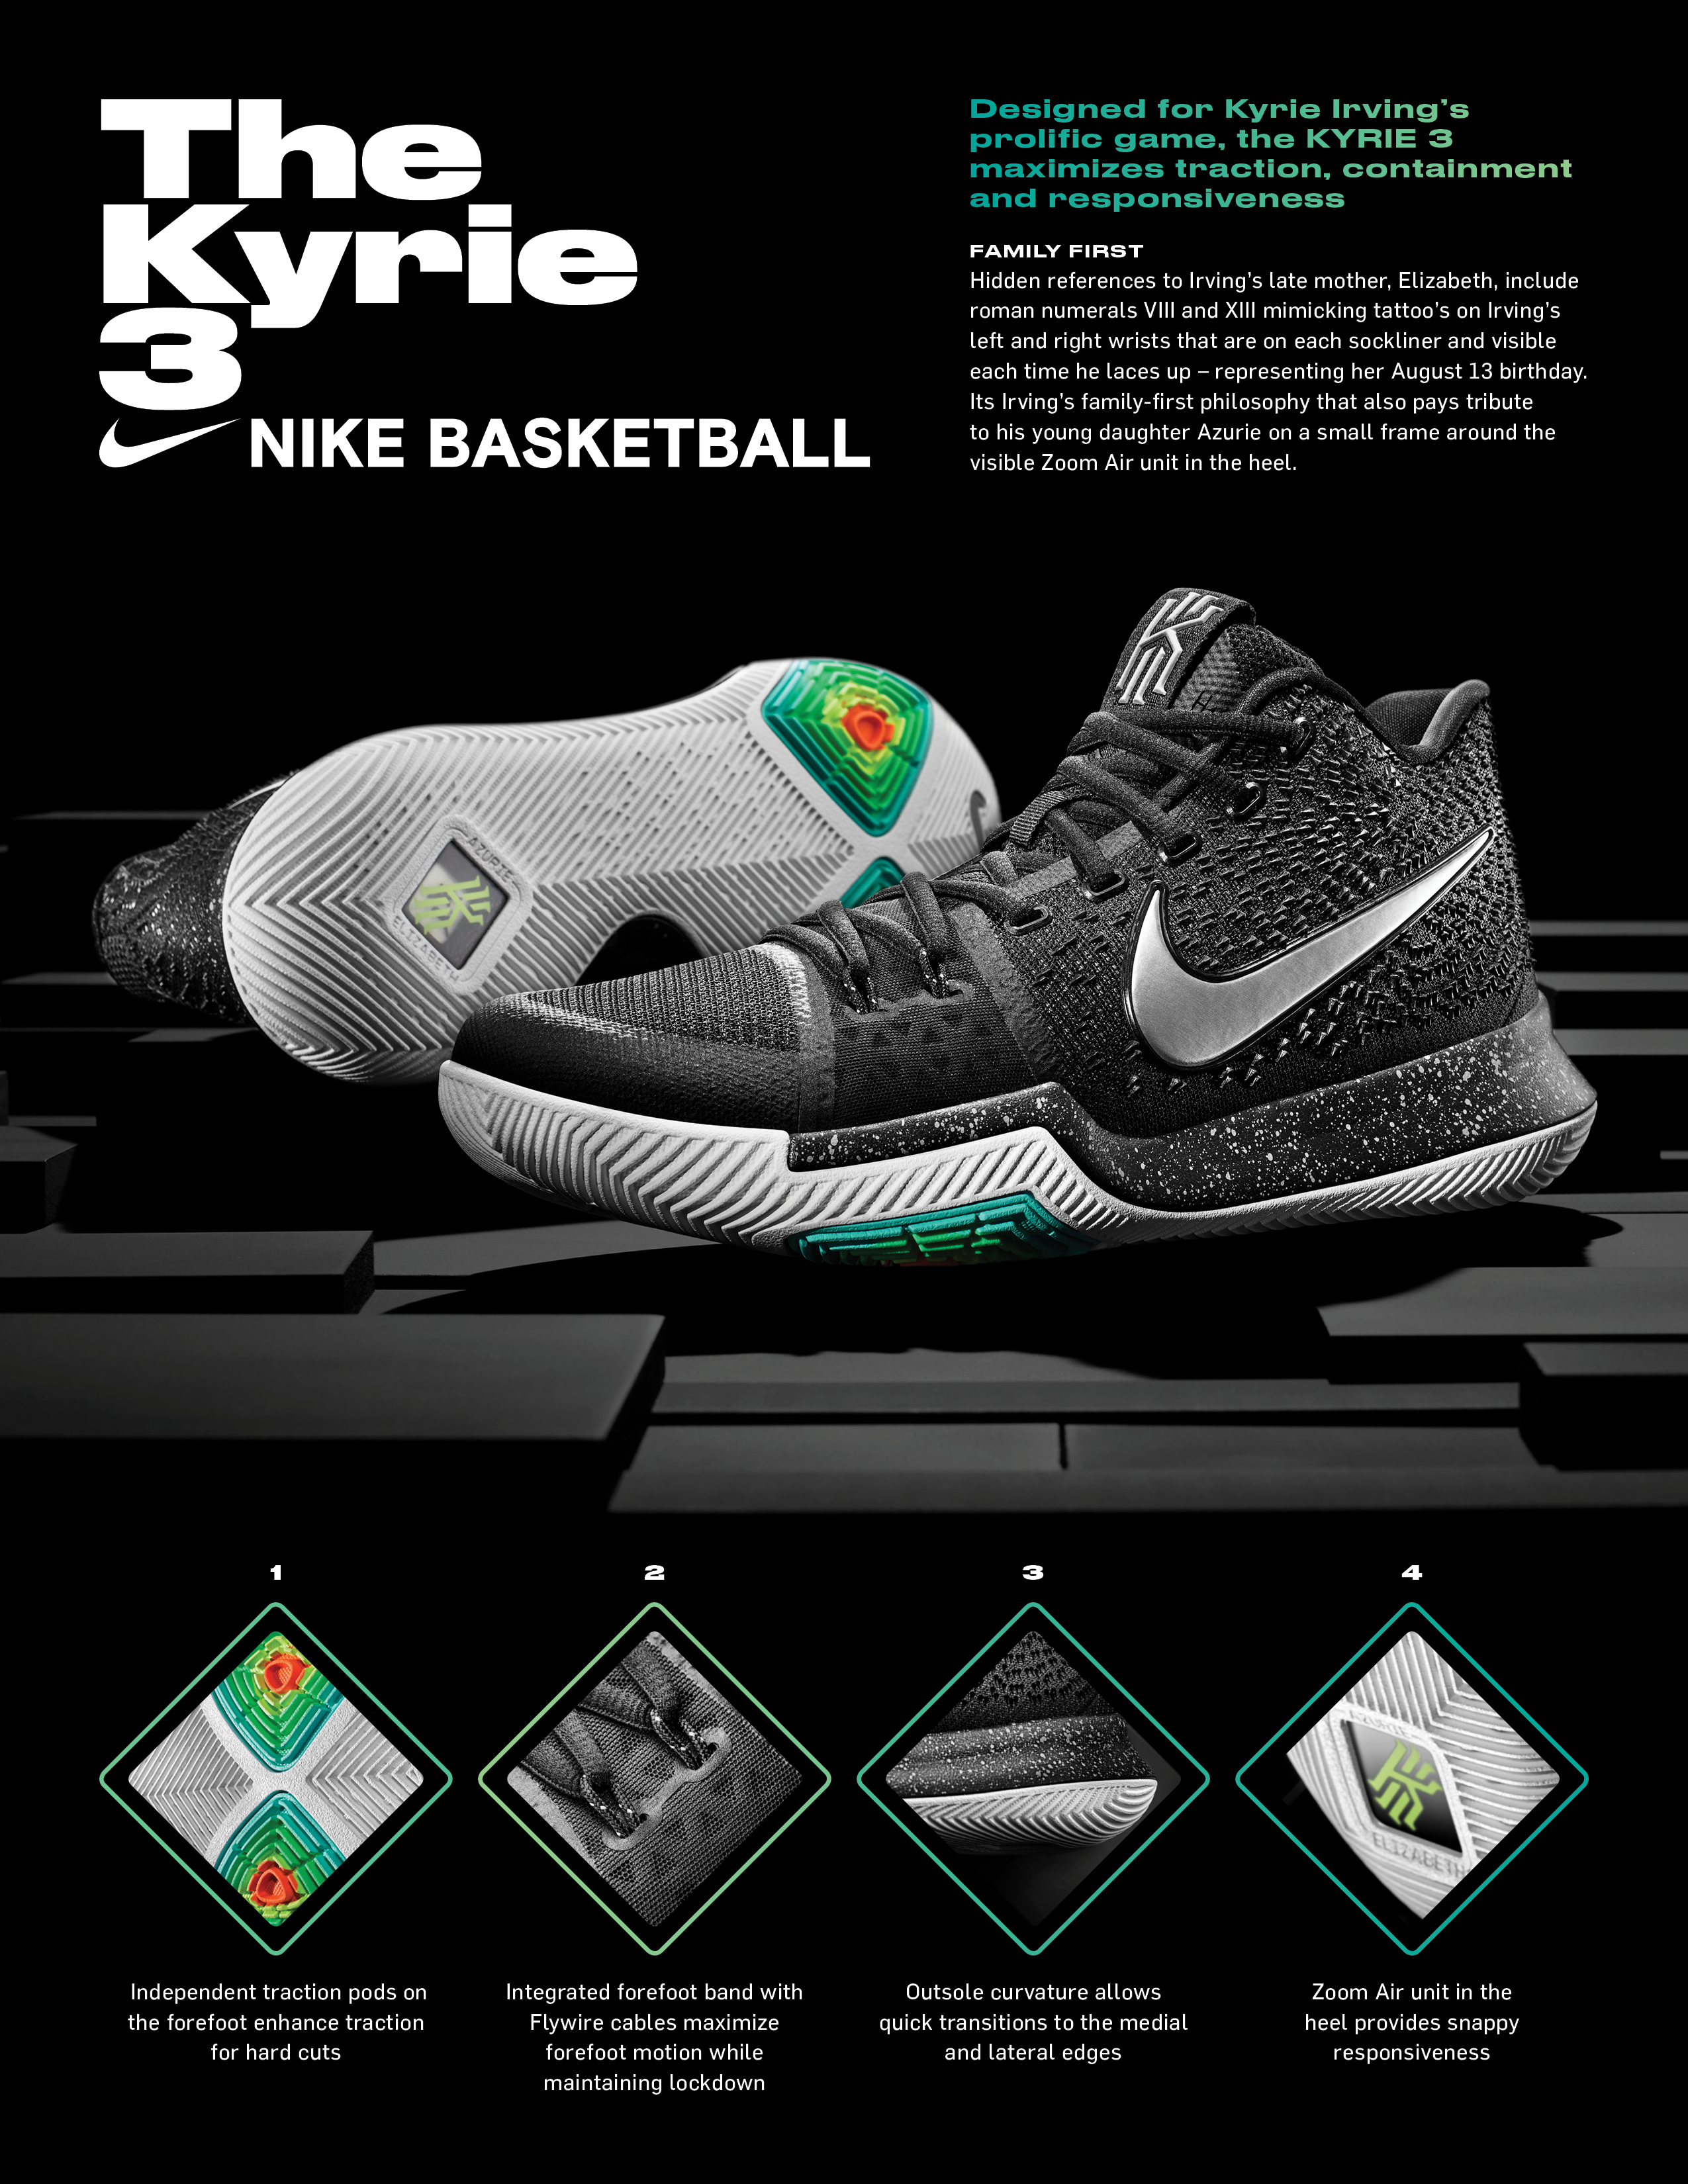 online retailer cec05 007b4 Nike-Officially-Unveils-the-Kyrie-3-9.jp